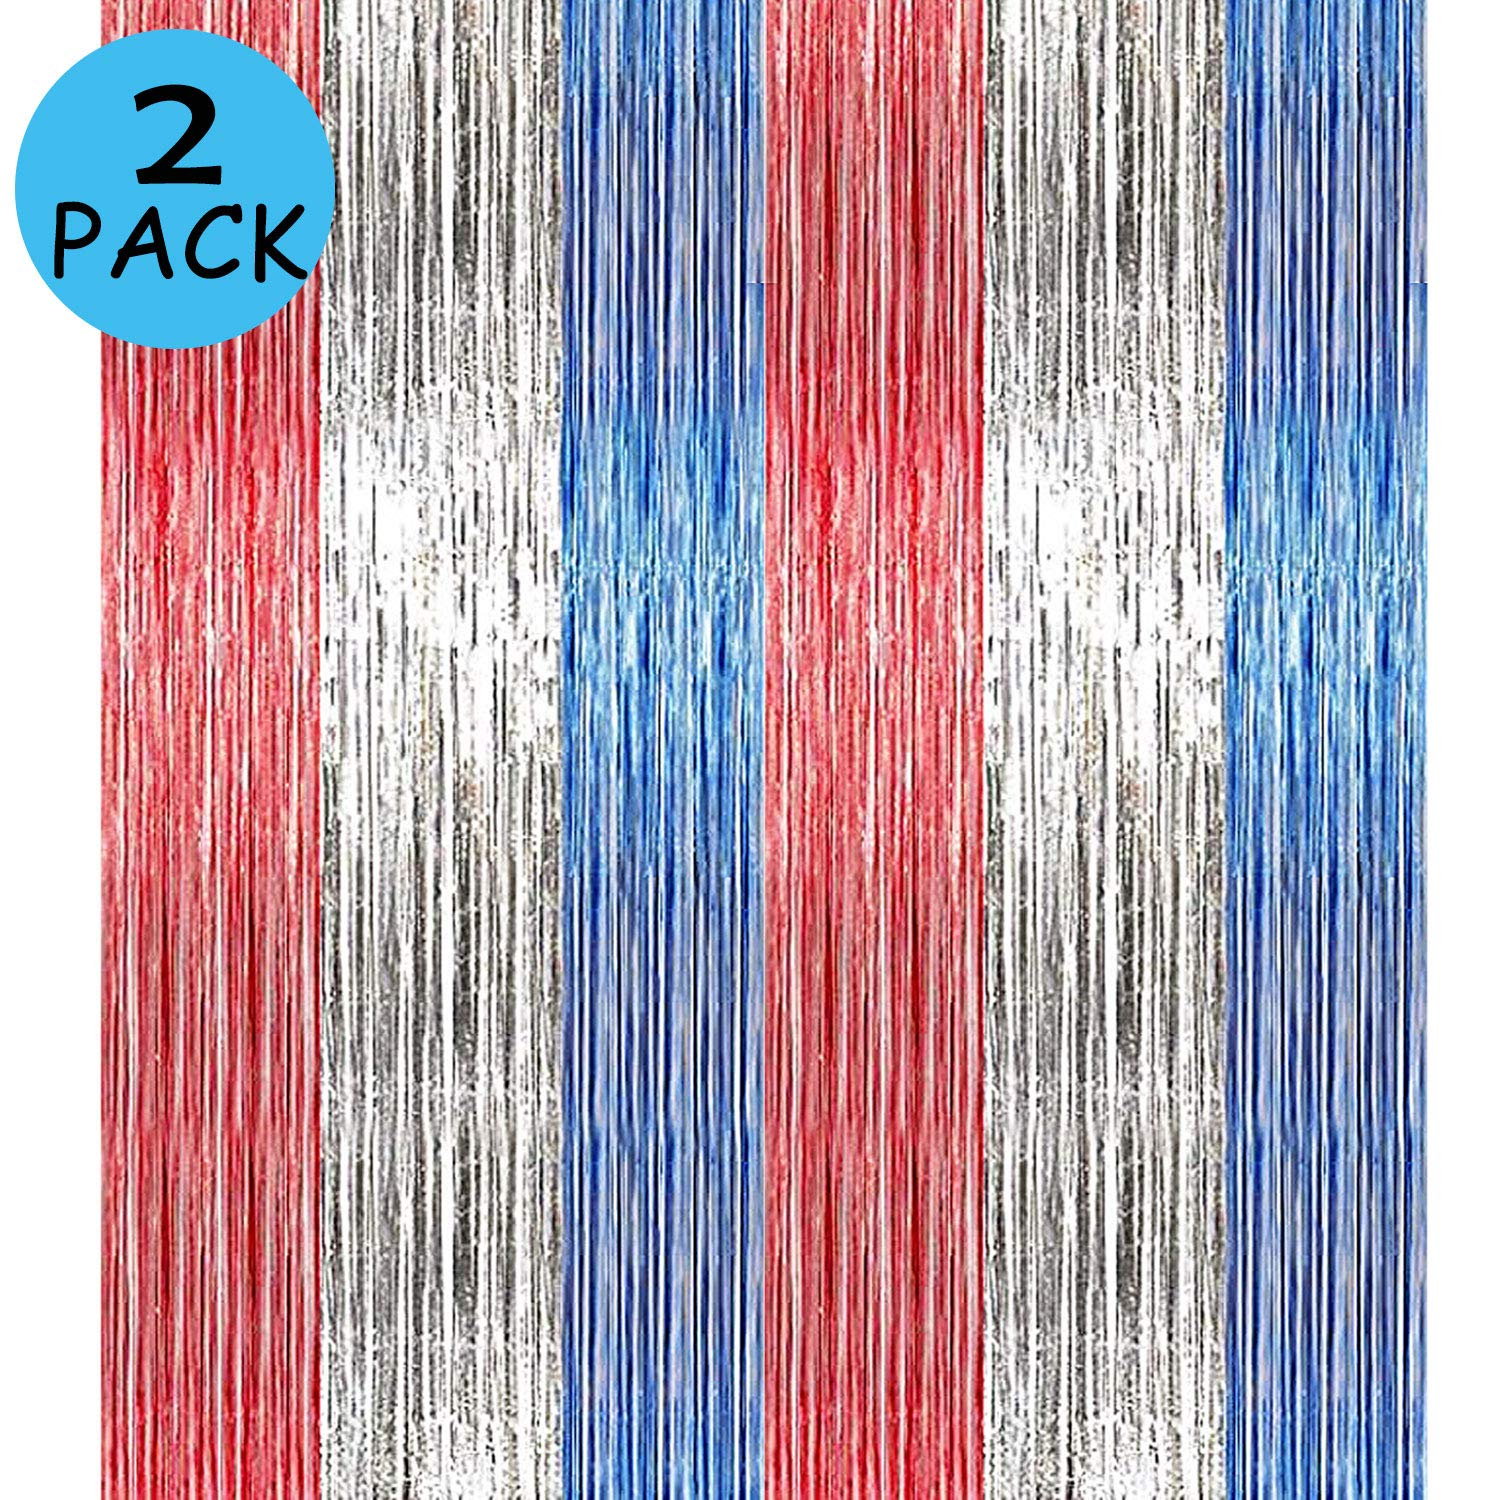 Lansian 2Pack 4th of July Foil Fringe Curtains Tinsel Garland Independence Day DIY Blue Red Party Photo Booth Props Backdrop Door Wall Decorations